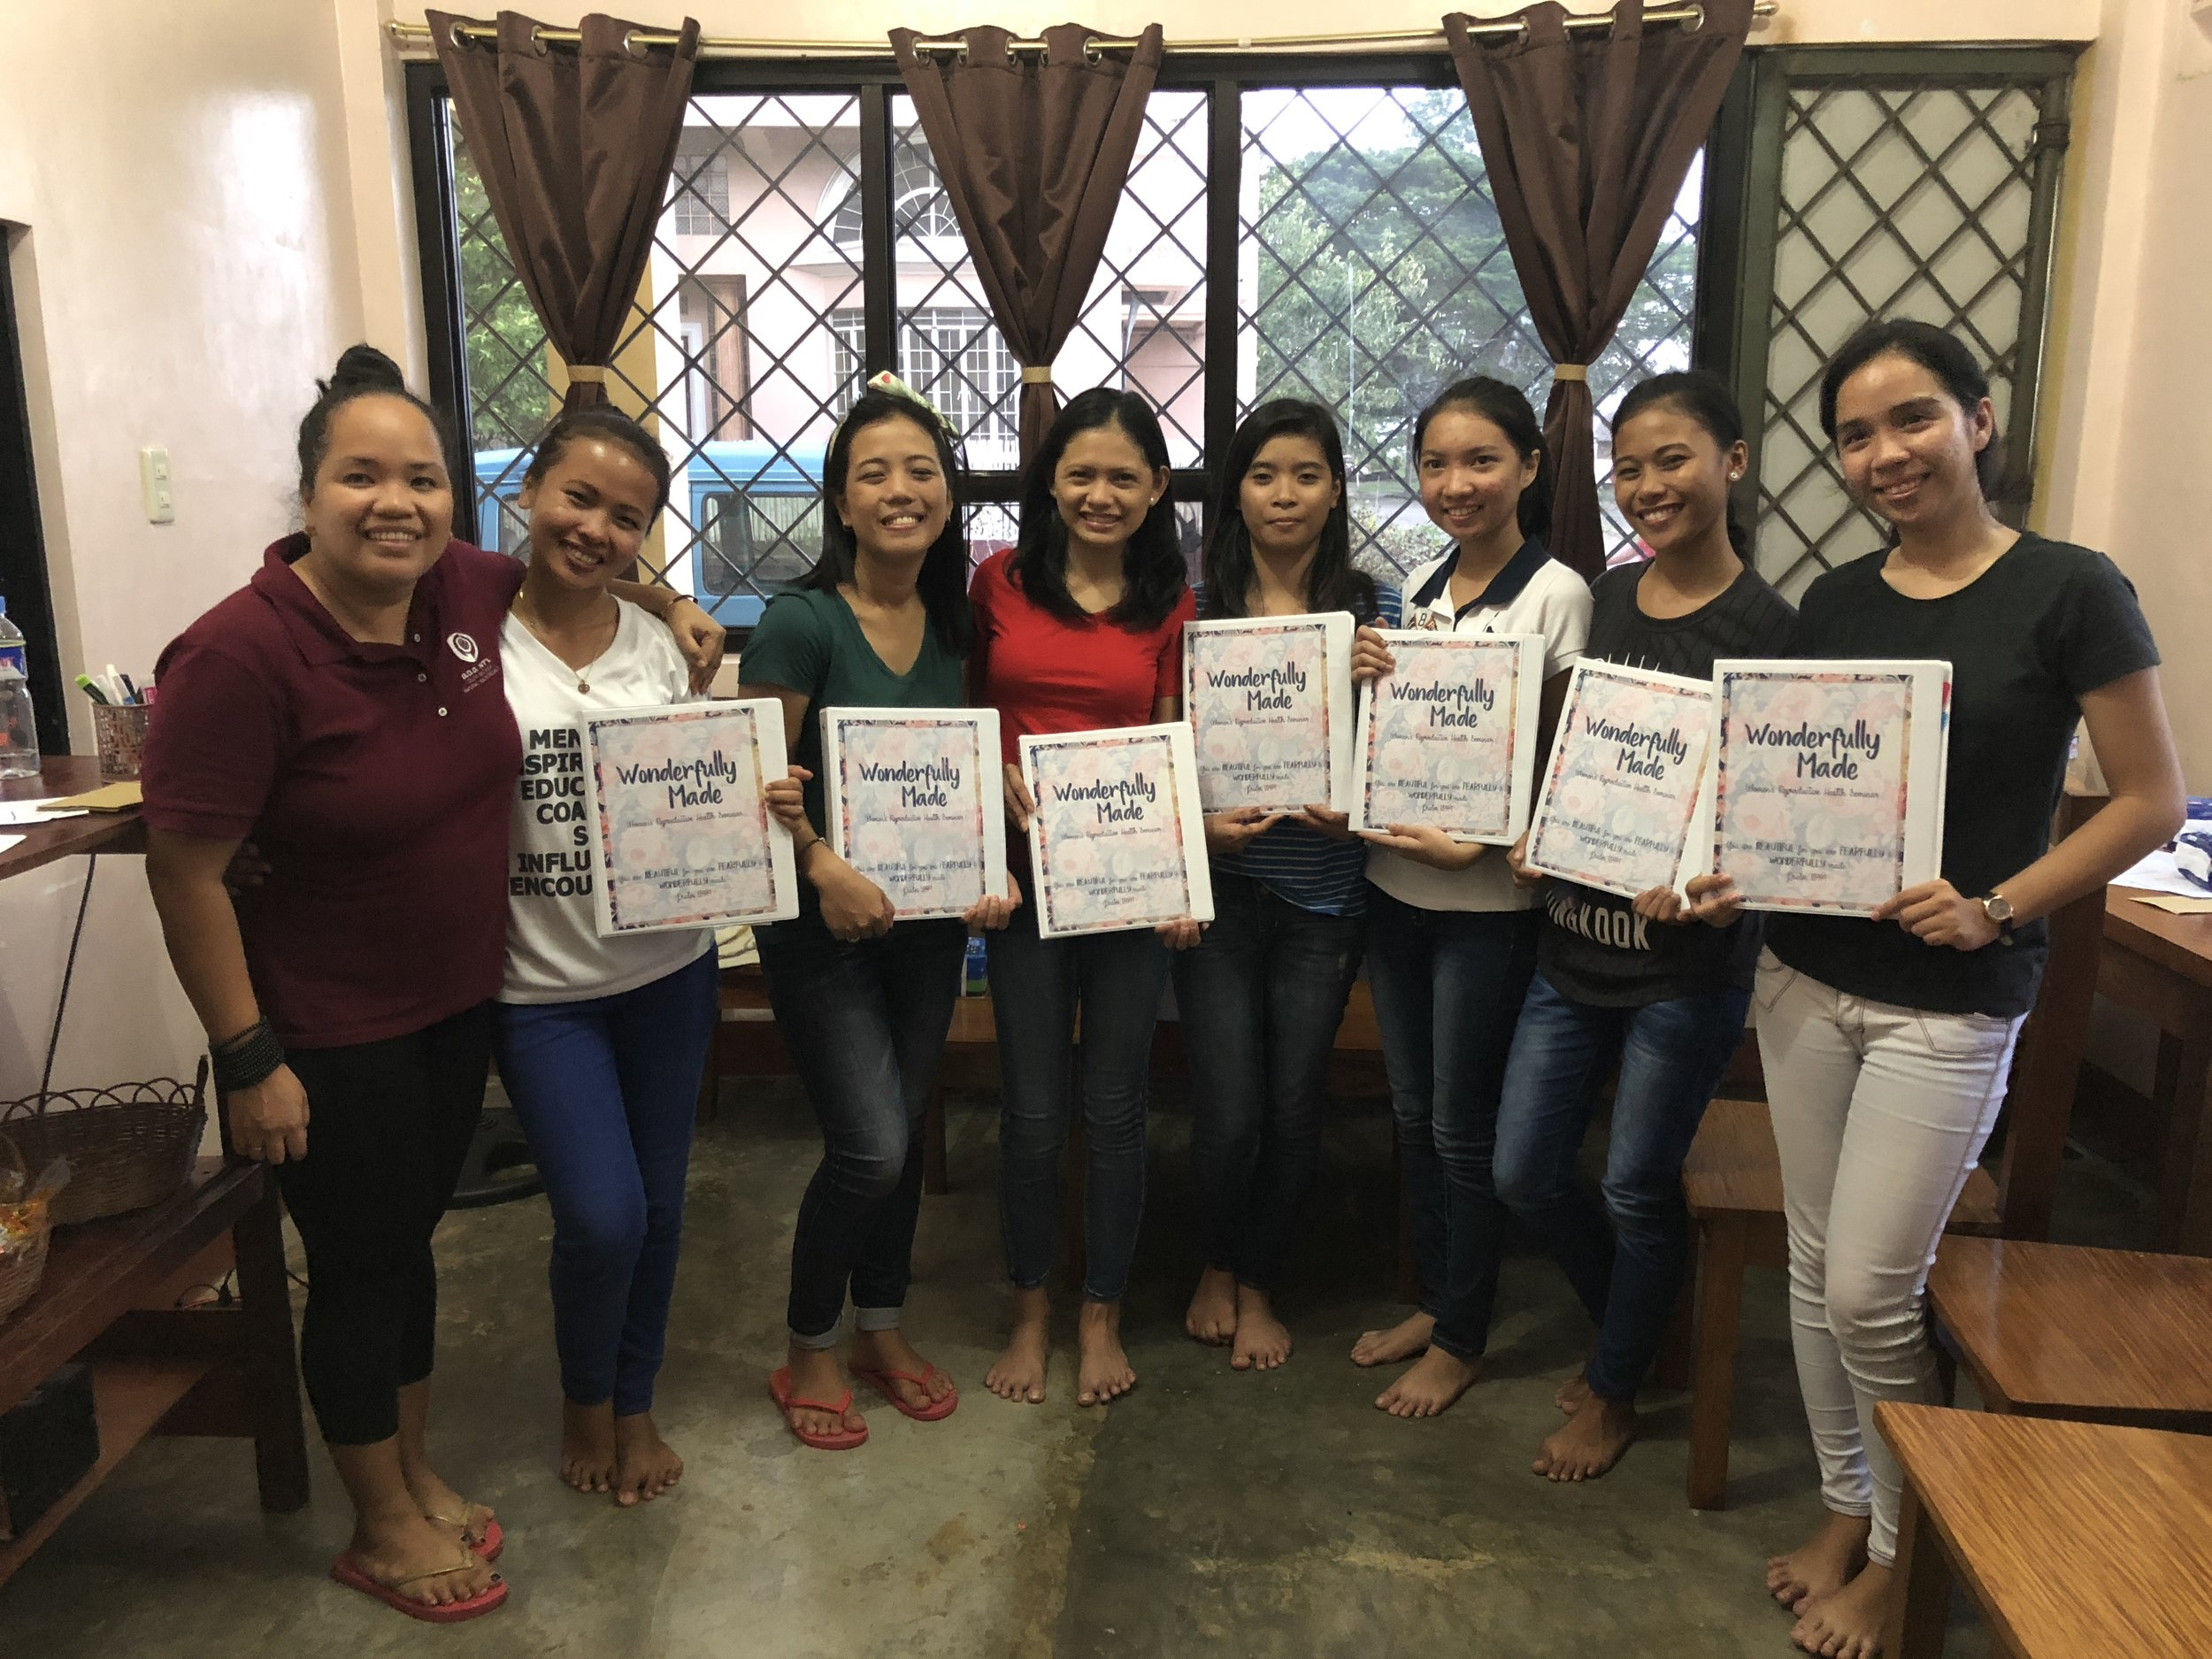 """A group of young ladies hold the curriculum to """"Wonderfully Made"""", a reproductive health seminar that will help these ladies better understand the reproductive process when they move into that season of life."""